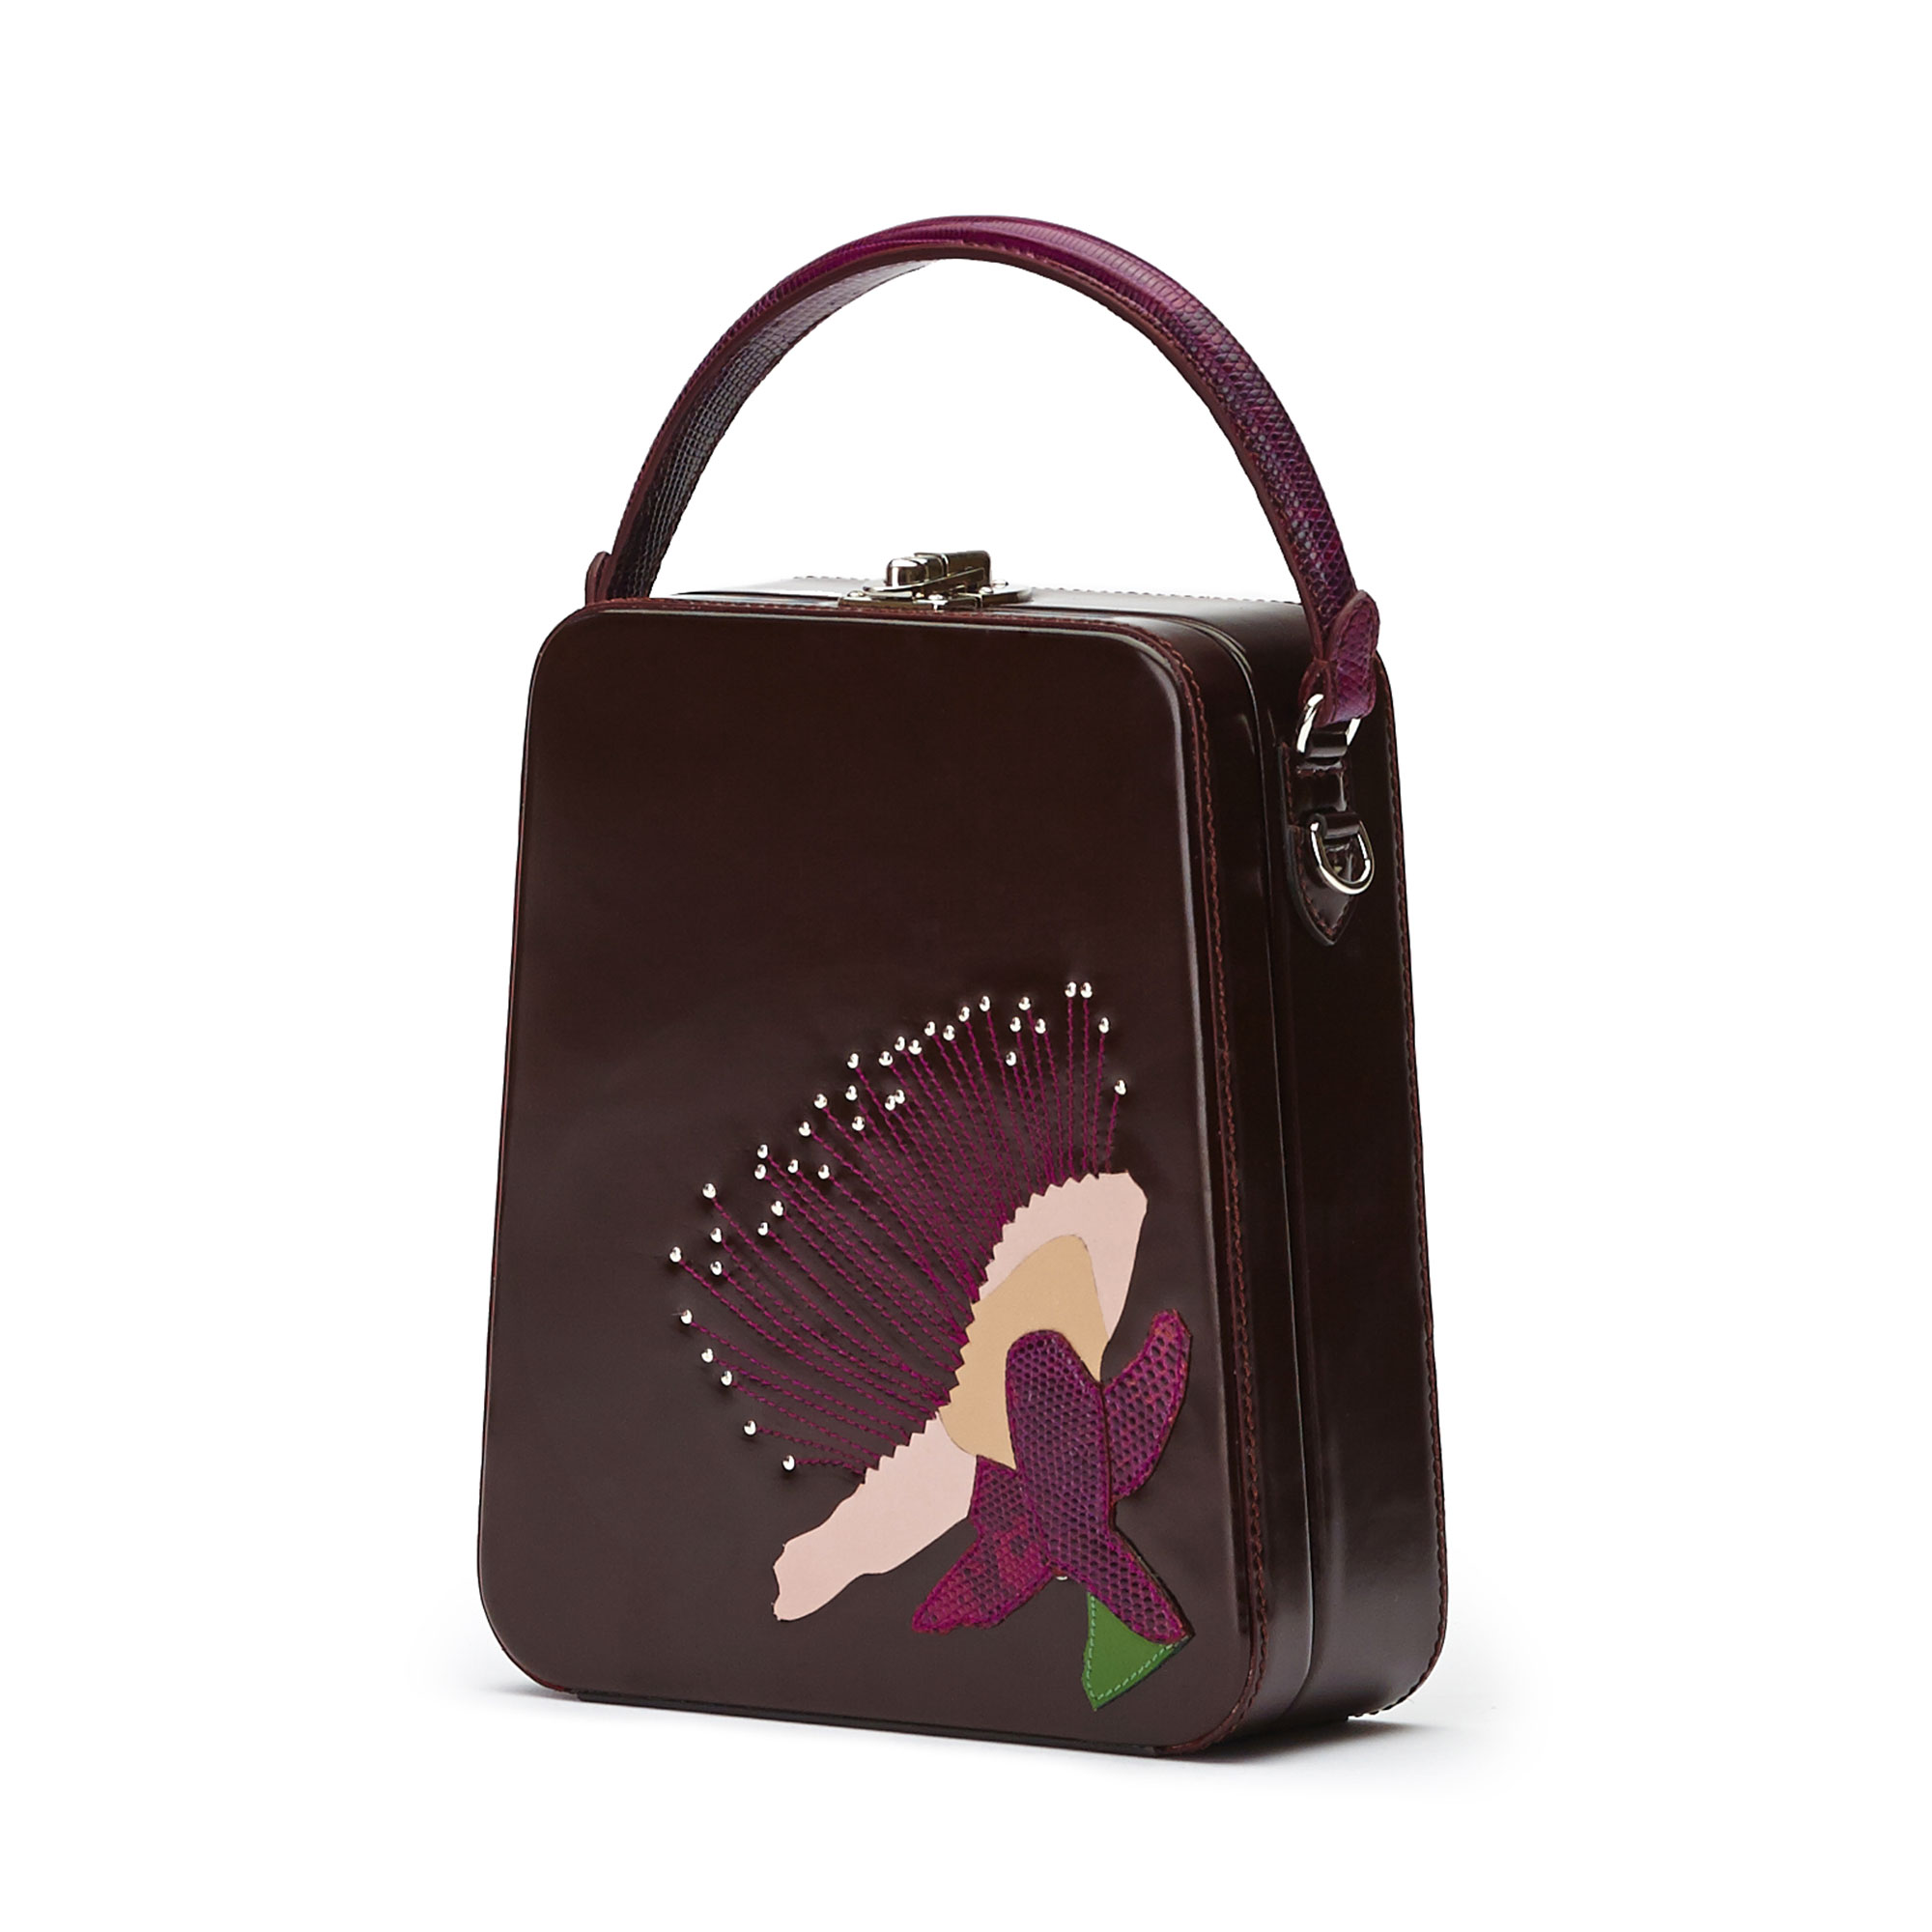 The bordeaux with embroidered flower brushed calf Tall Bertoncina bag by Bertoni 1949 02